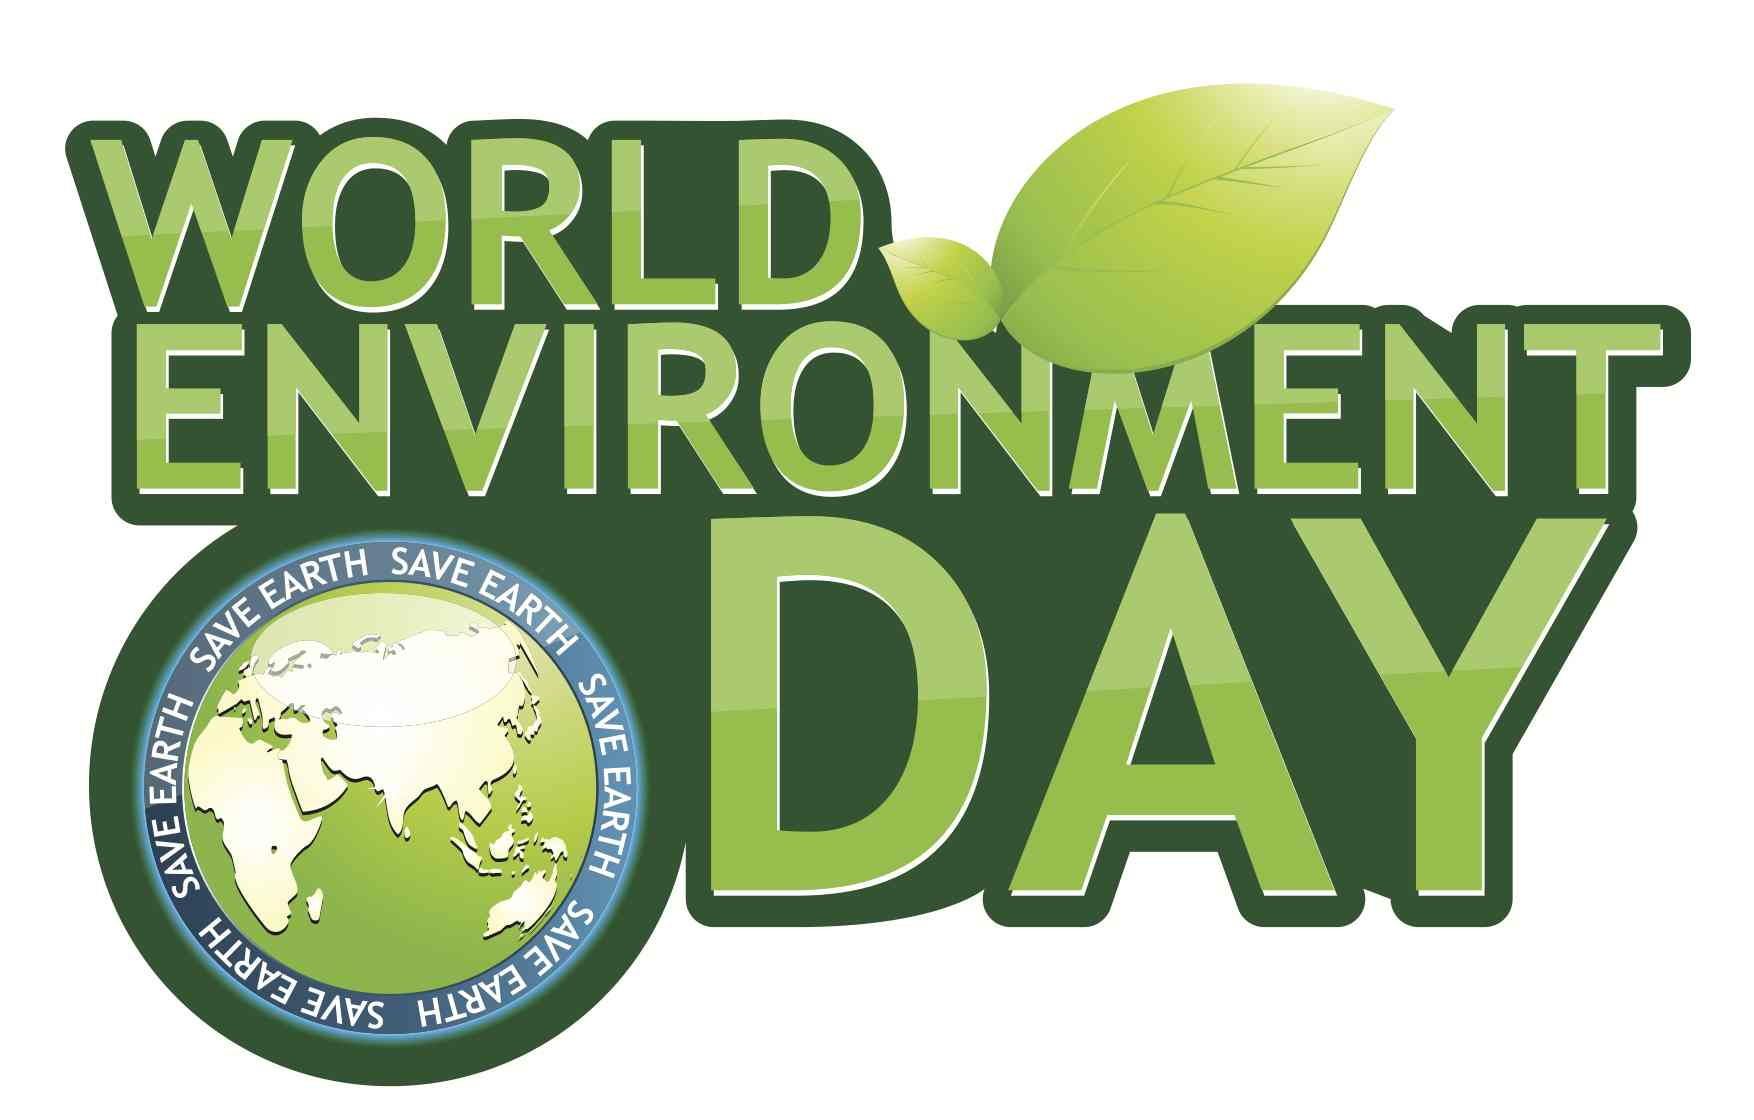 make the future cleaner greener and brighter on world